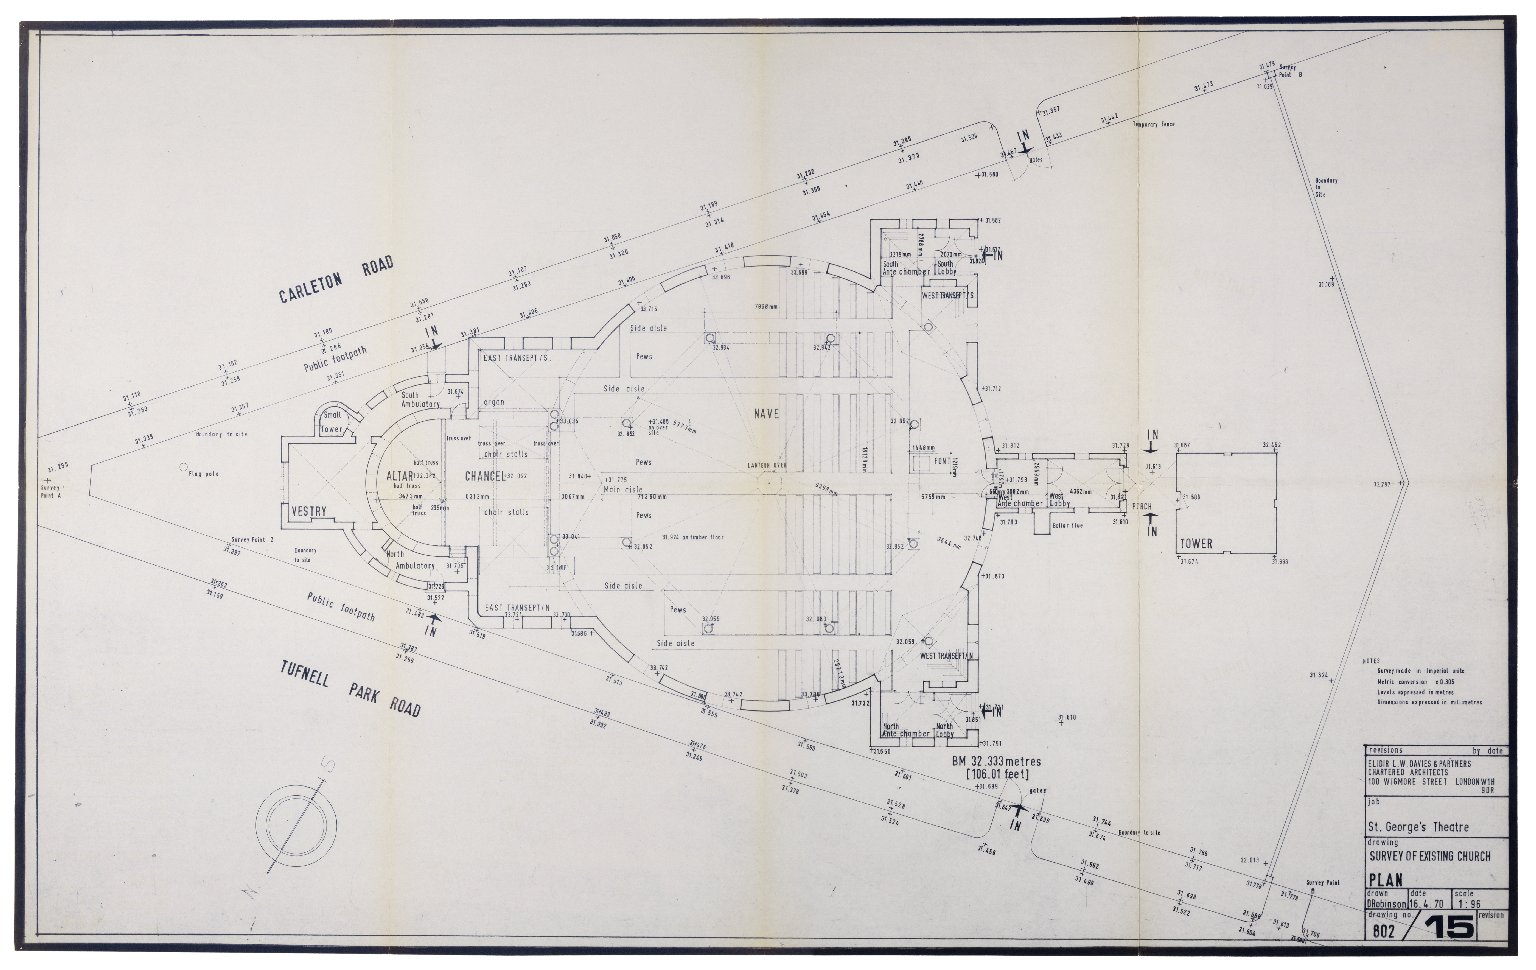 Survey of existing church (St. Georges), Apr. 1970, Davies & Partners (plan)